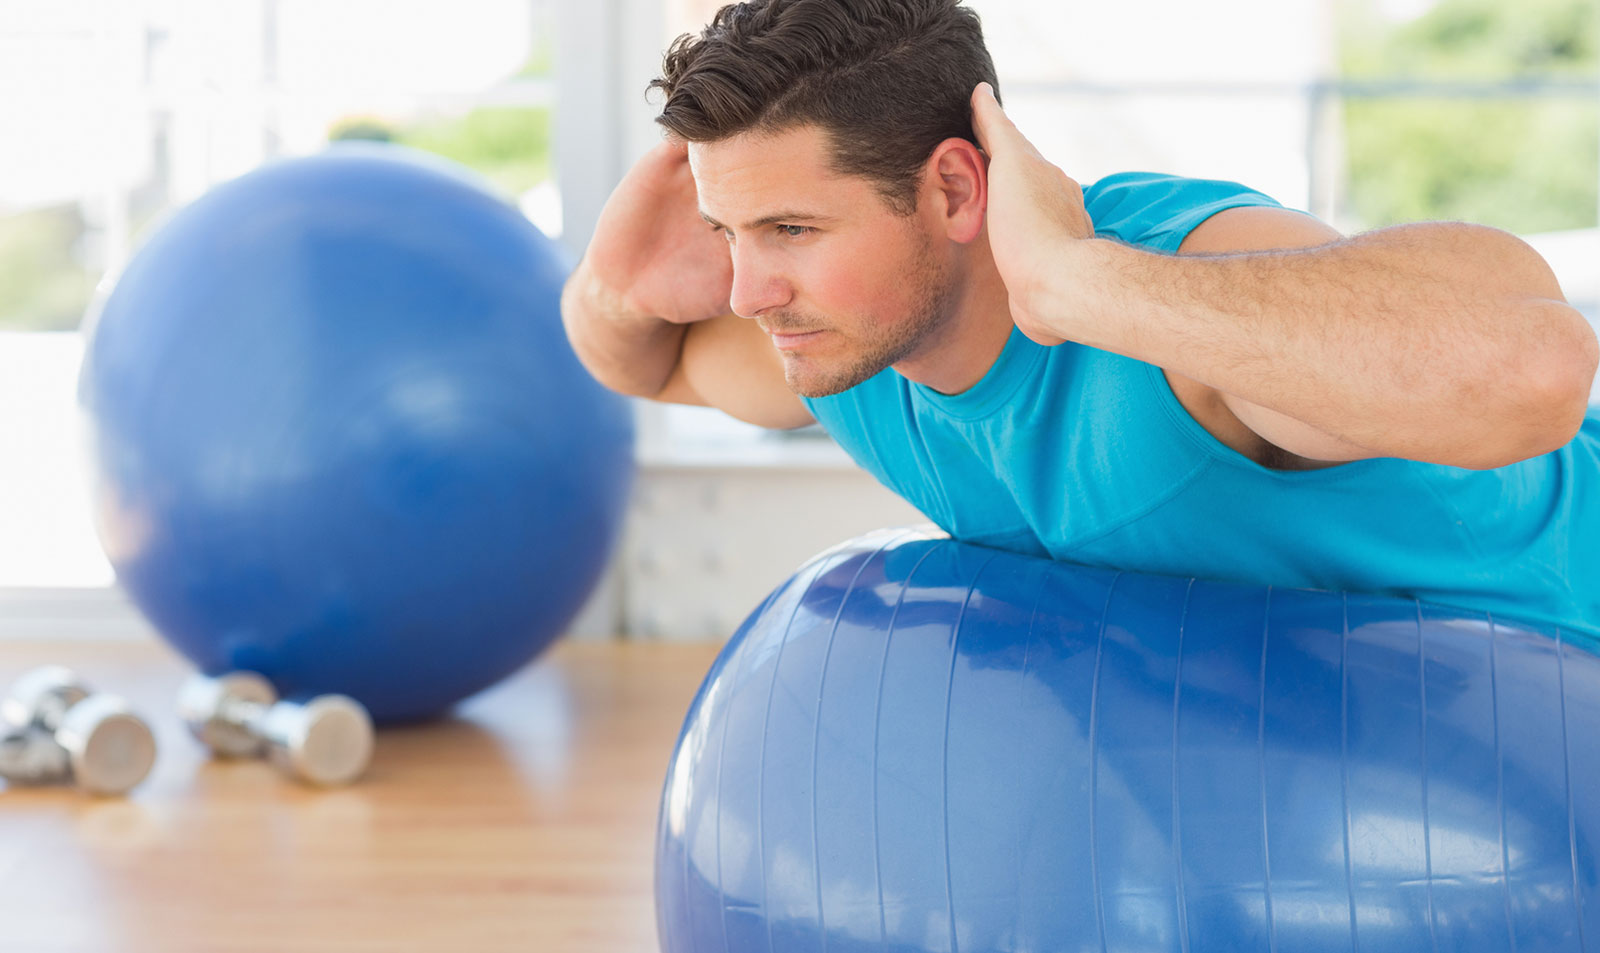 Stability Ball For Lower Back Pain